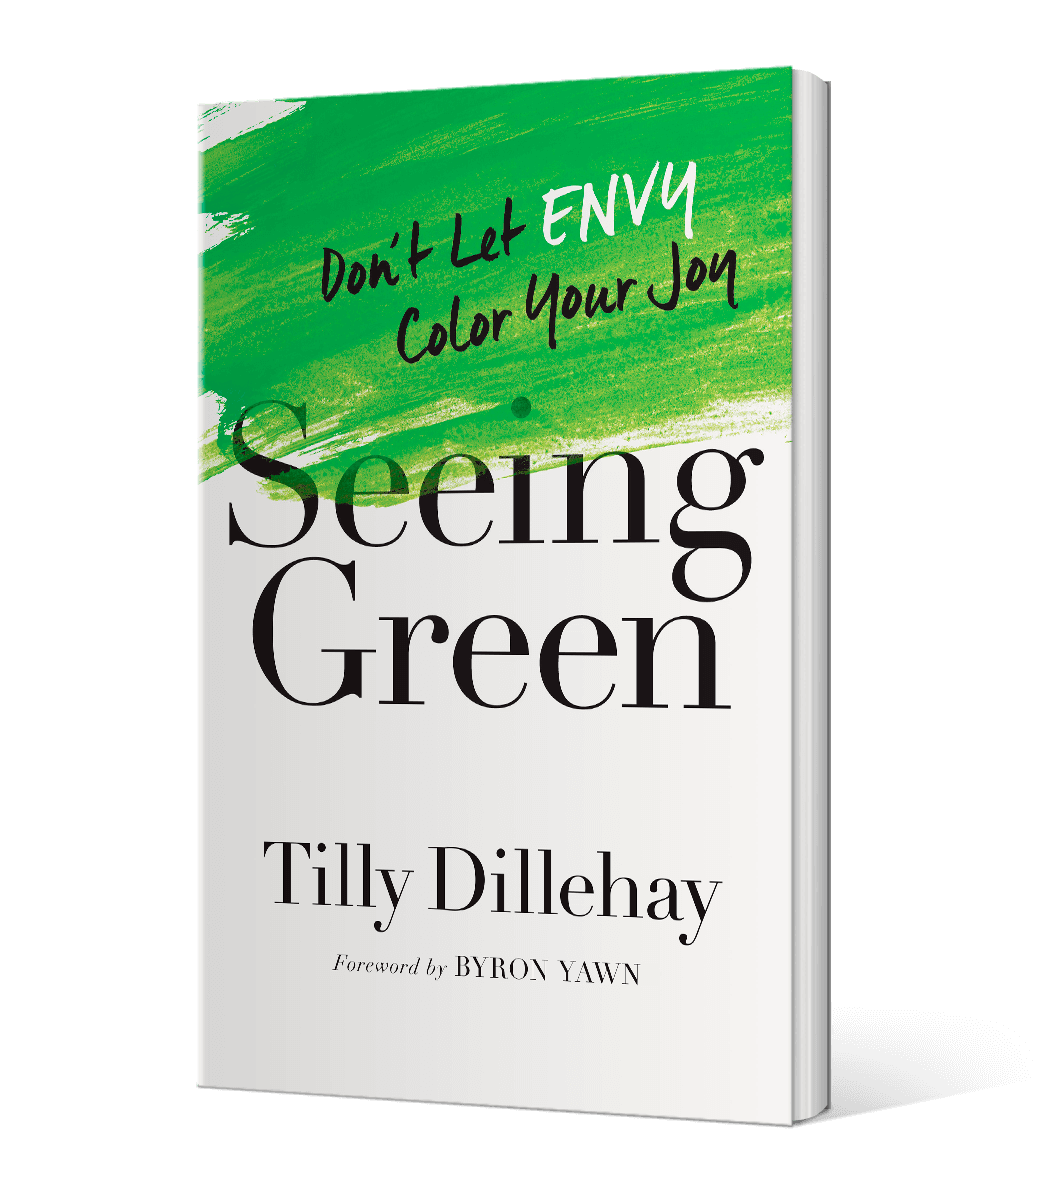 Seeing Green by Tilly Dillehay